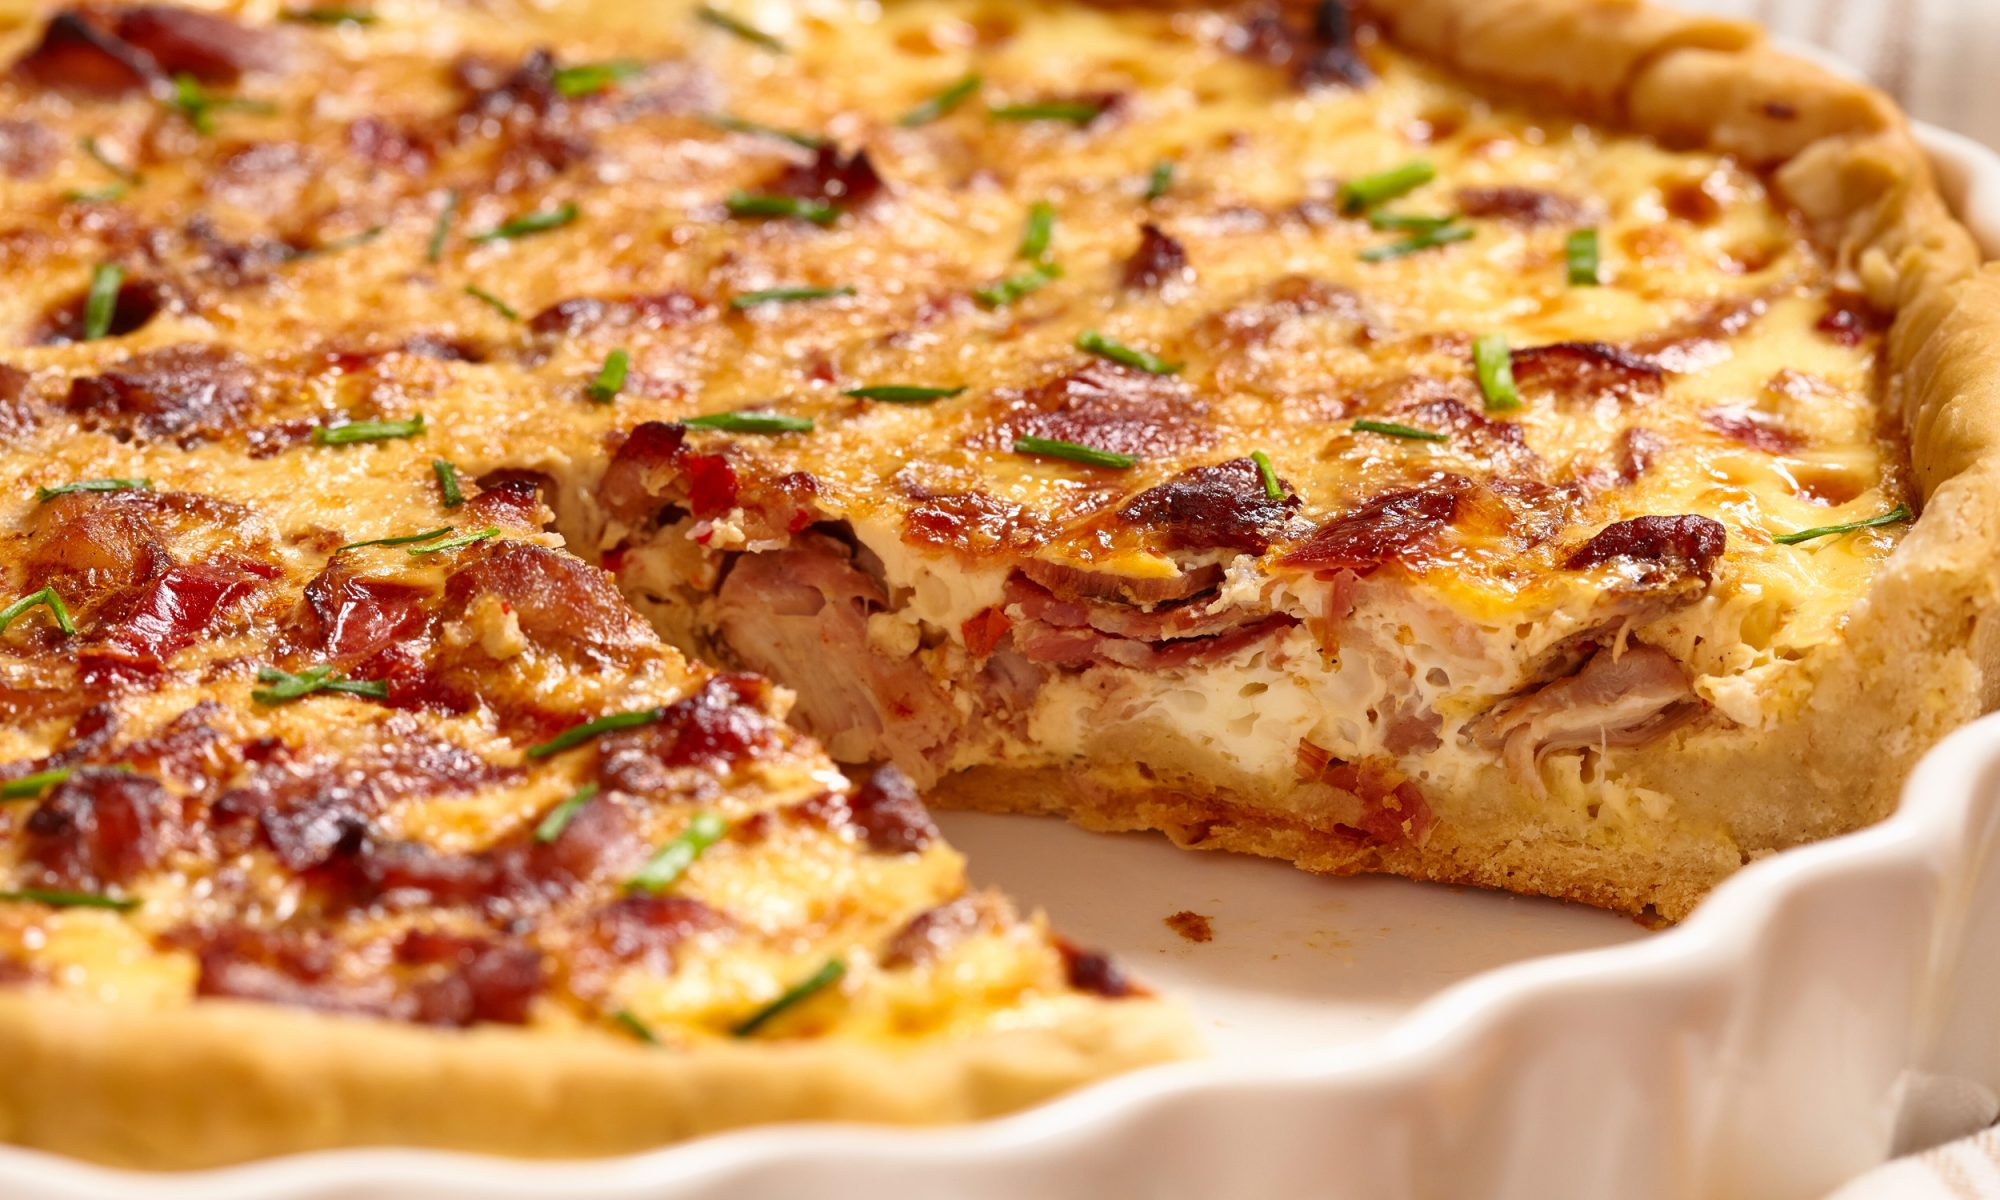 EC: Even Egg Haters Will Like This Quiche